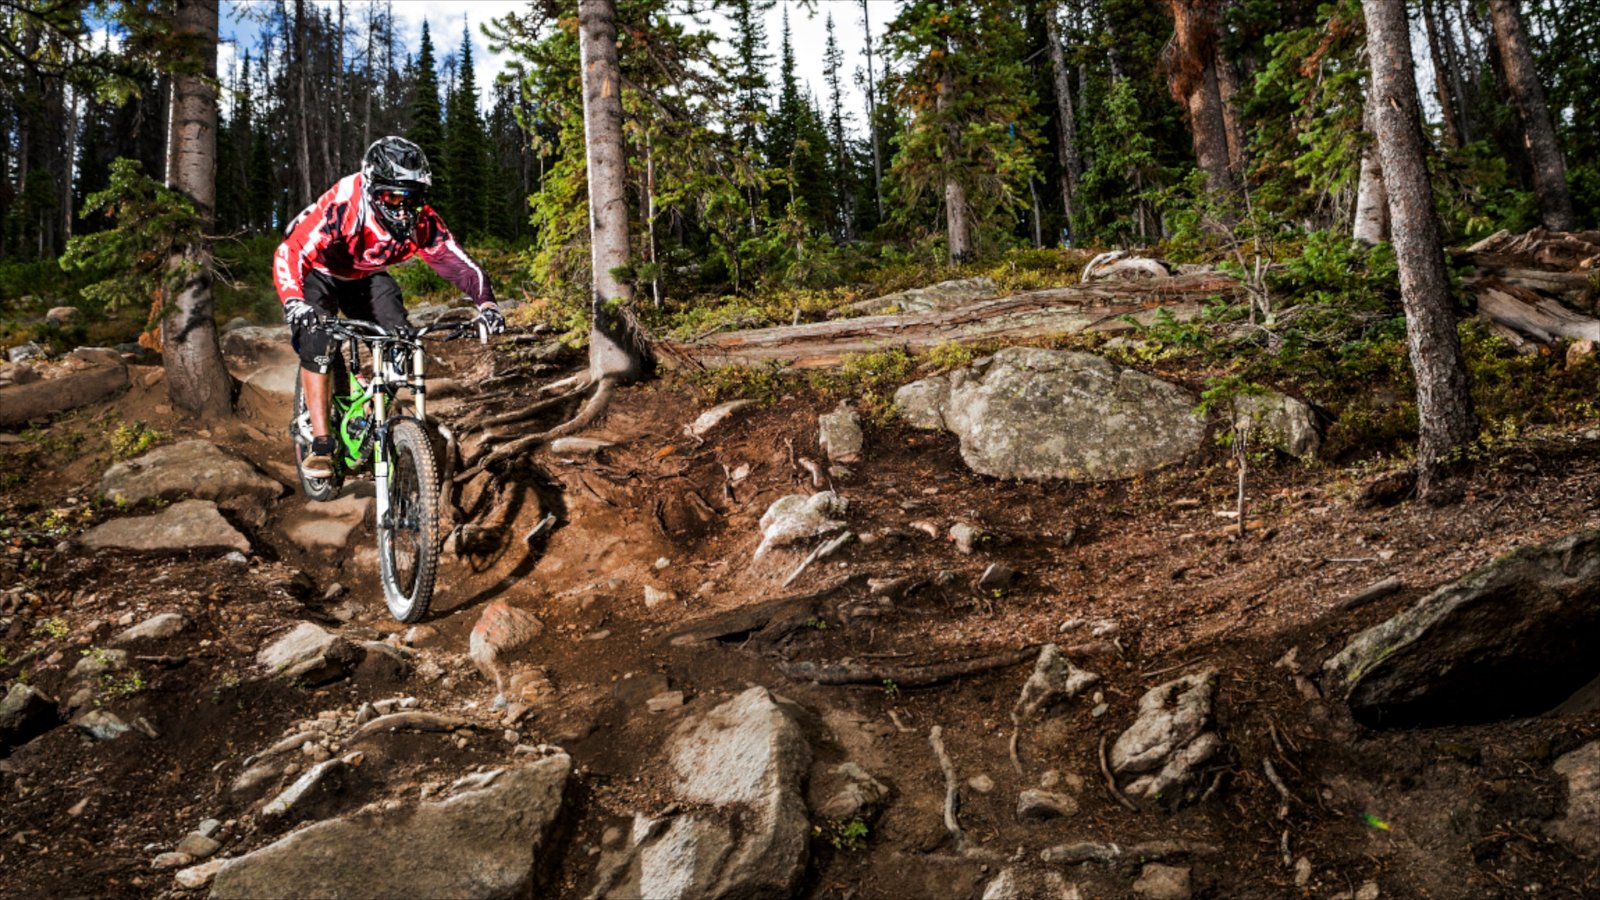 Winter Park Ski Resort mostrando mountain bike, cenas de floresta e cenas tranquilas